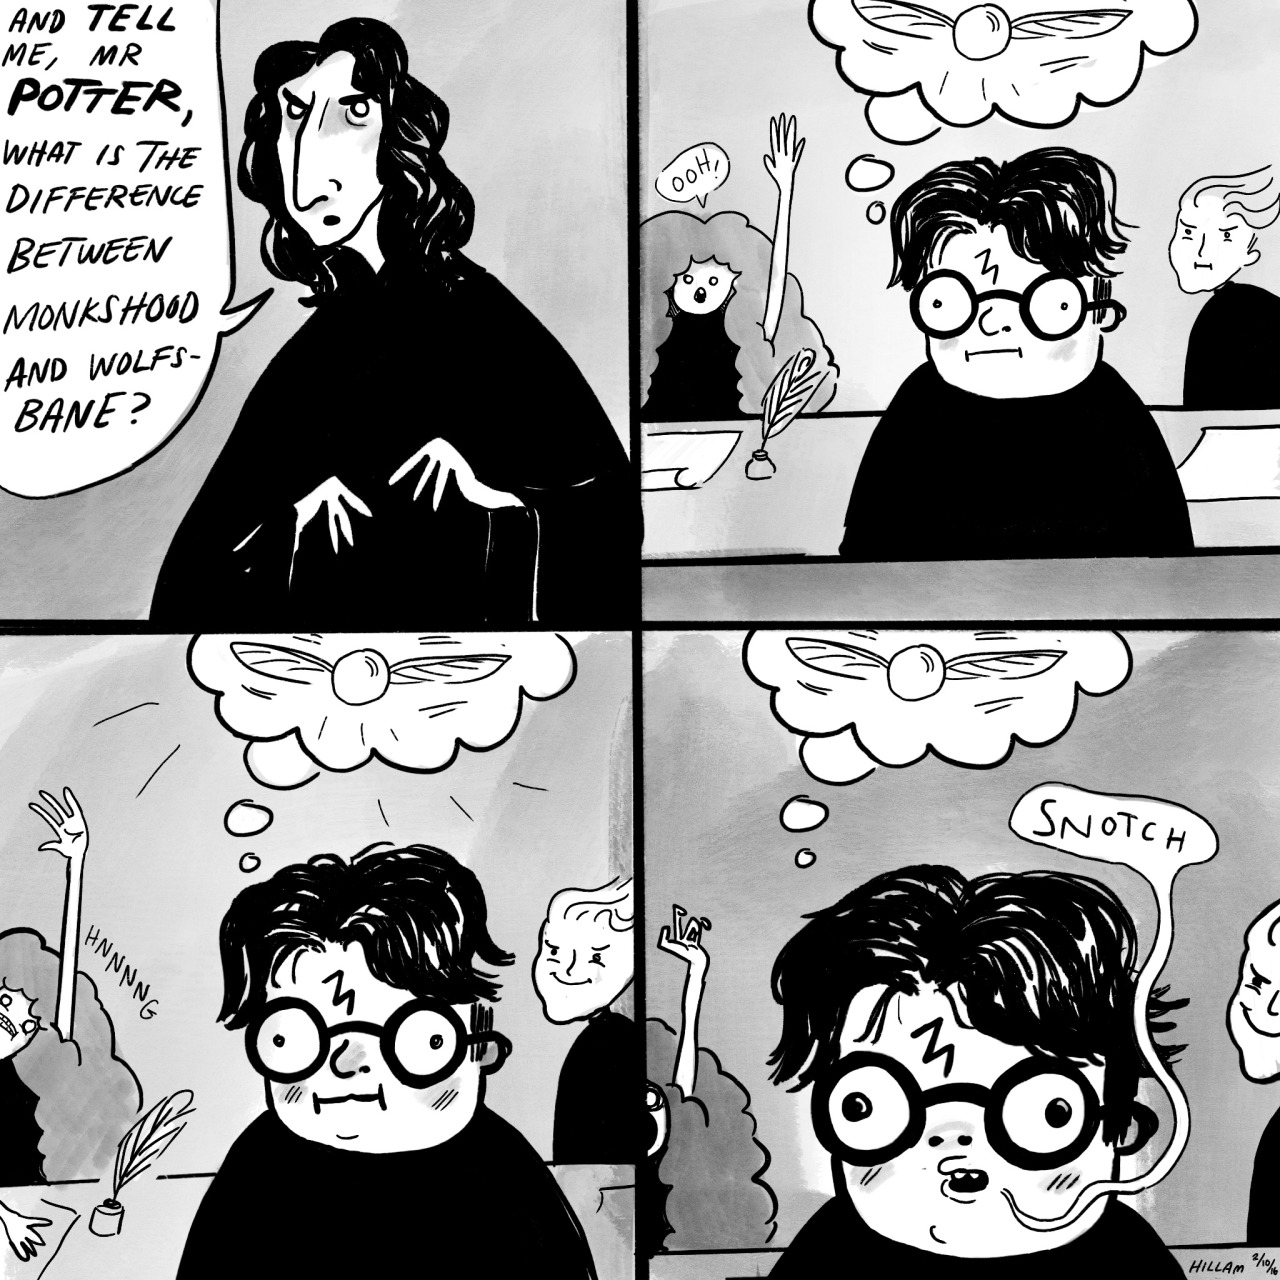 A comic with Harry daydreaming about Quidditch in Potions class